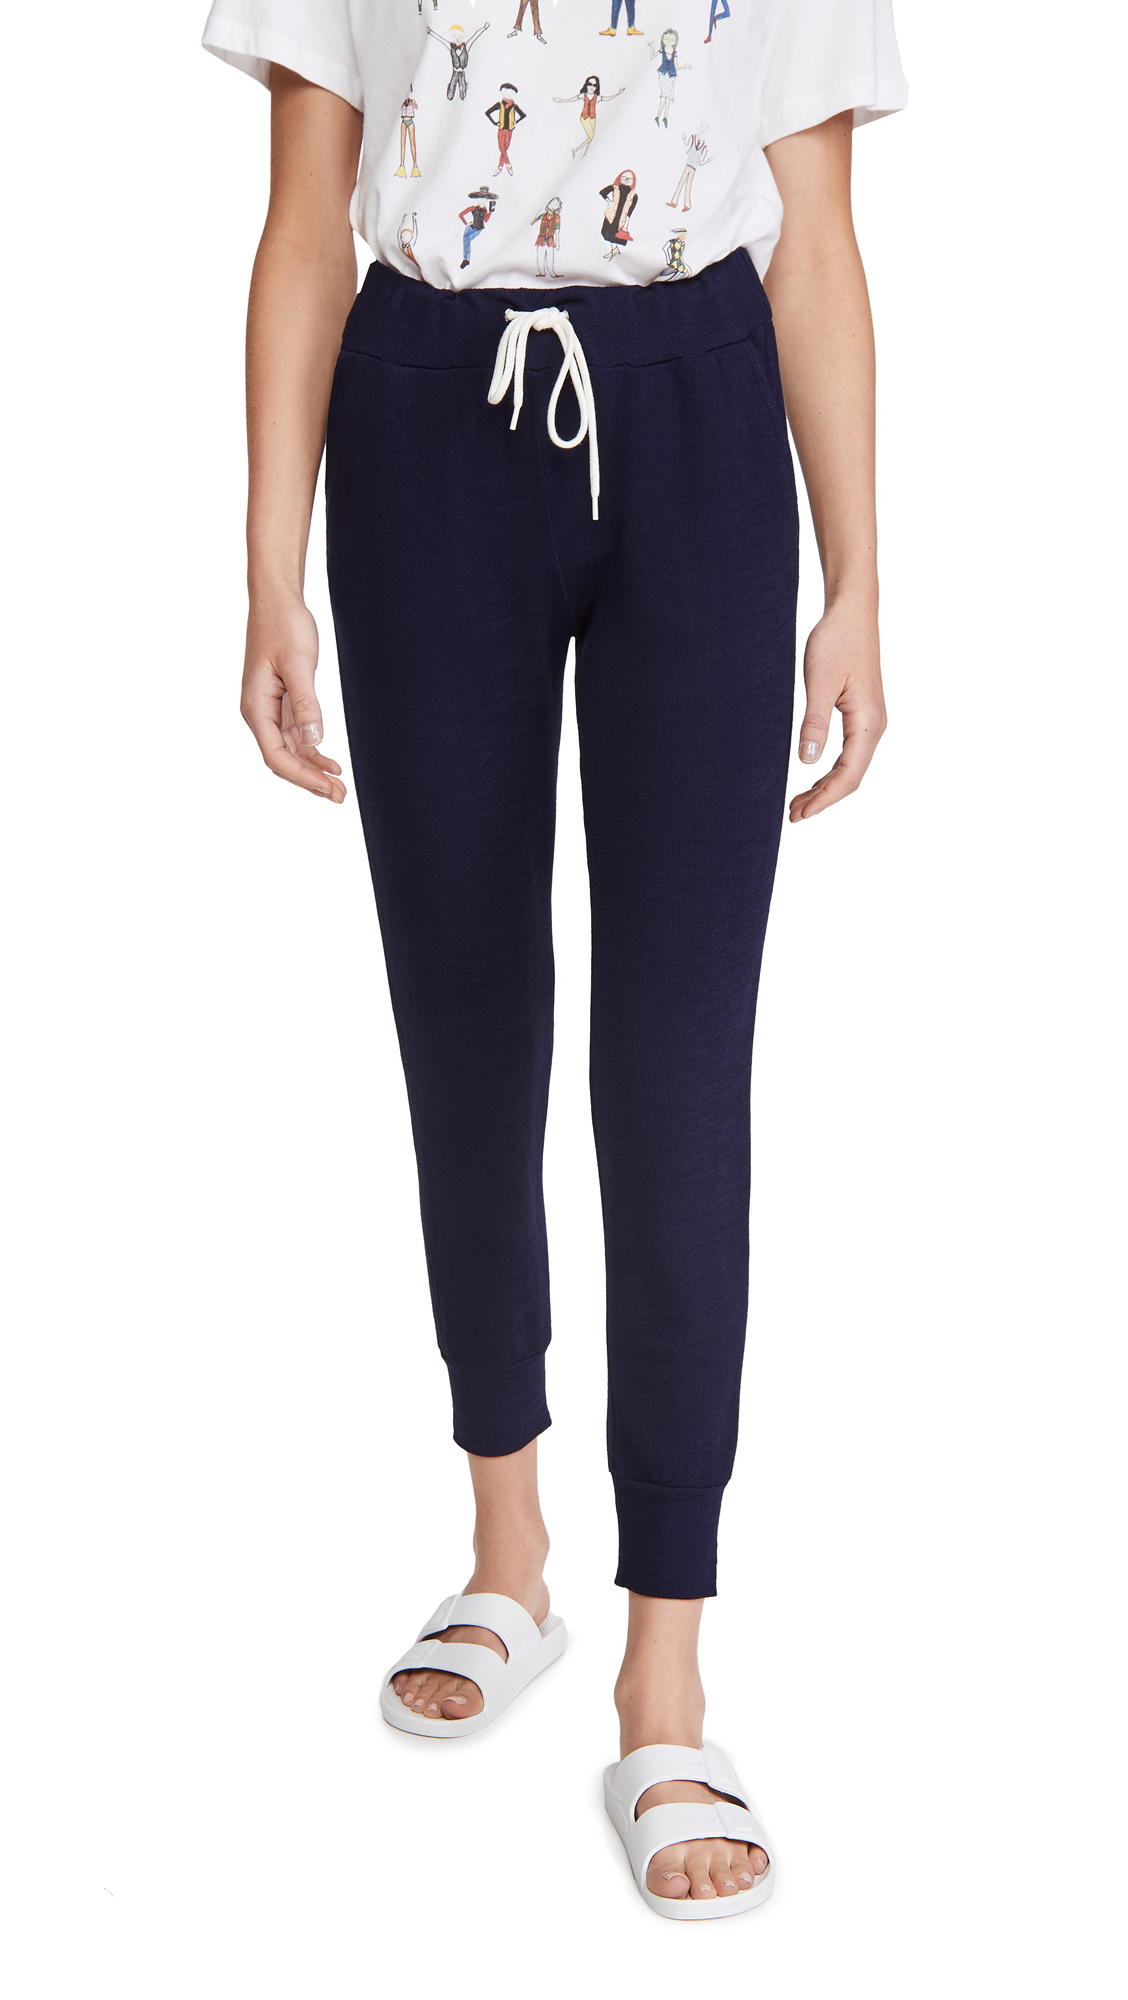 MONROW Supersoft Sporty Sweats